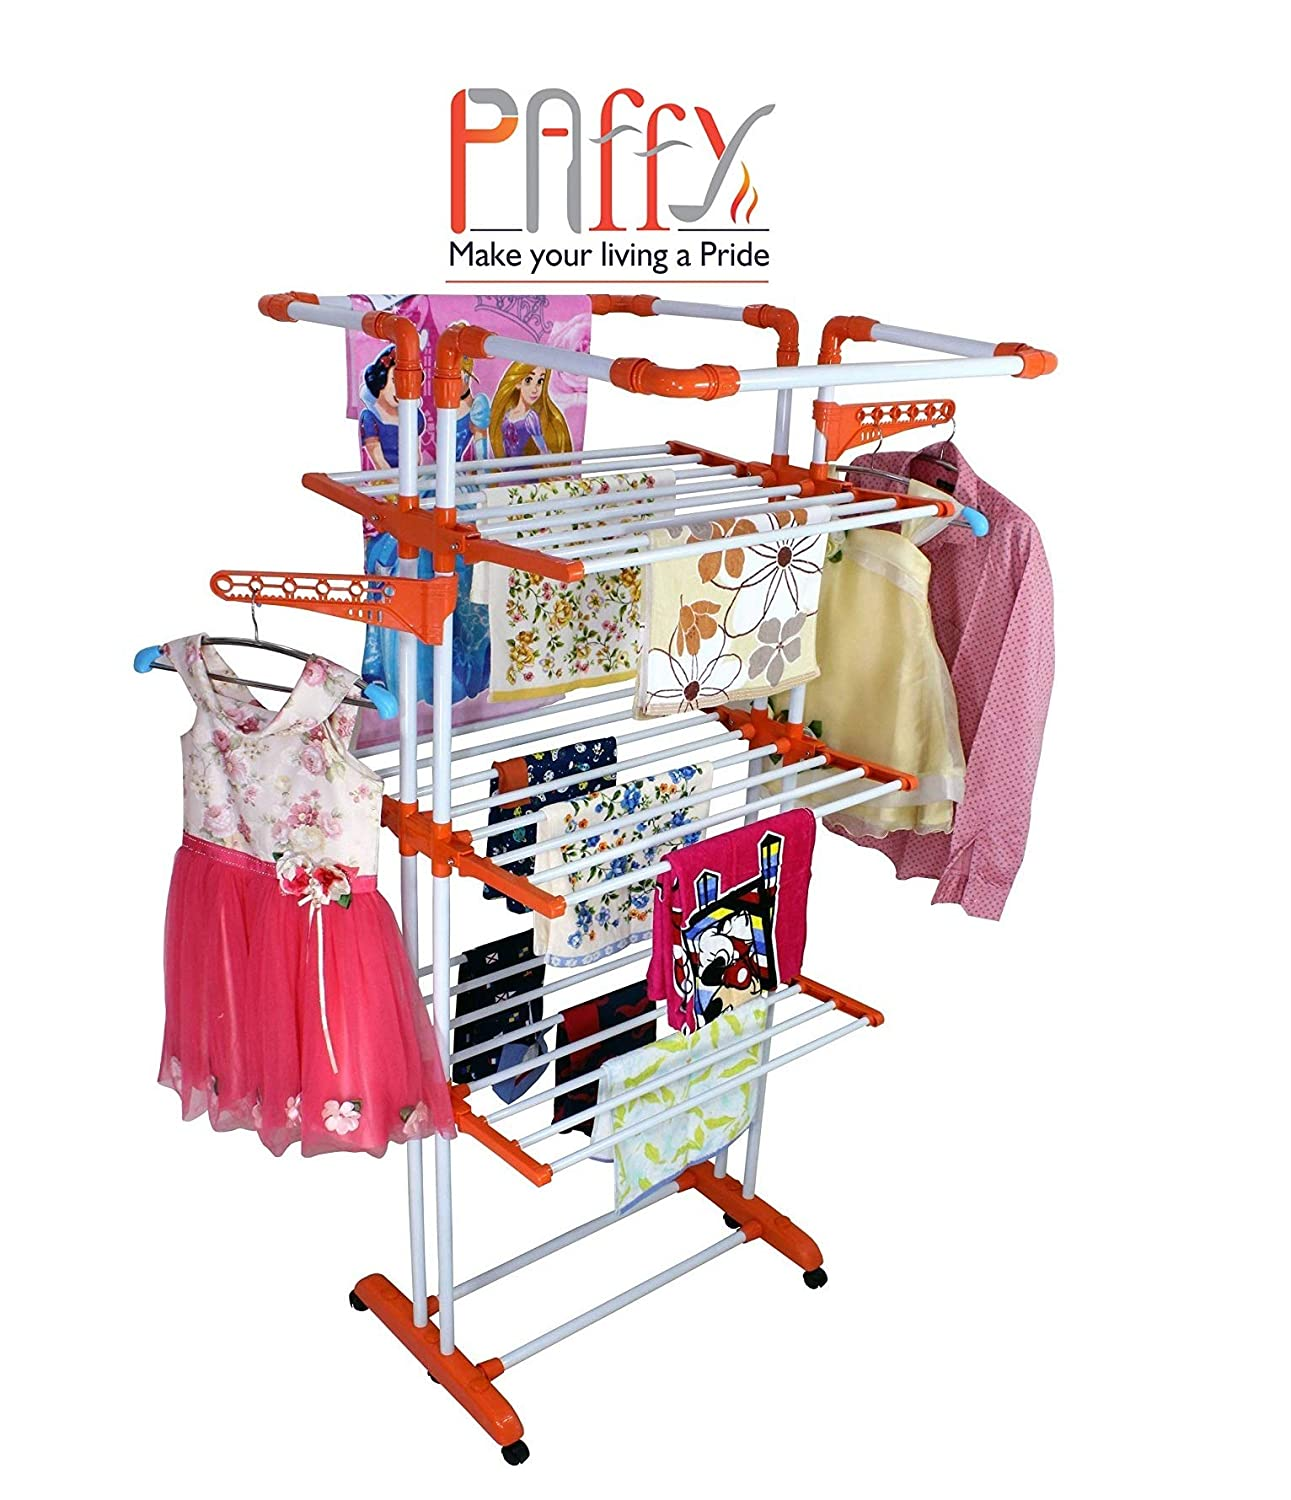 Paffy Steel Cloth Drying Stand, 3 Layer